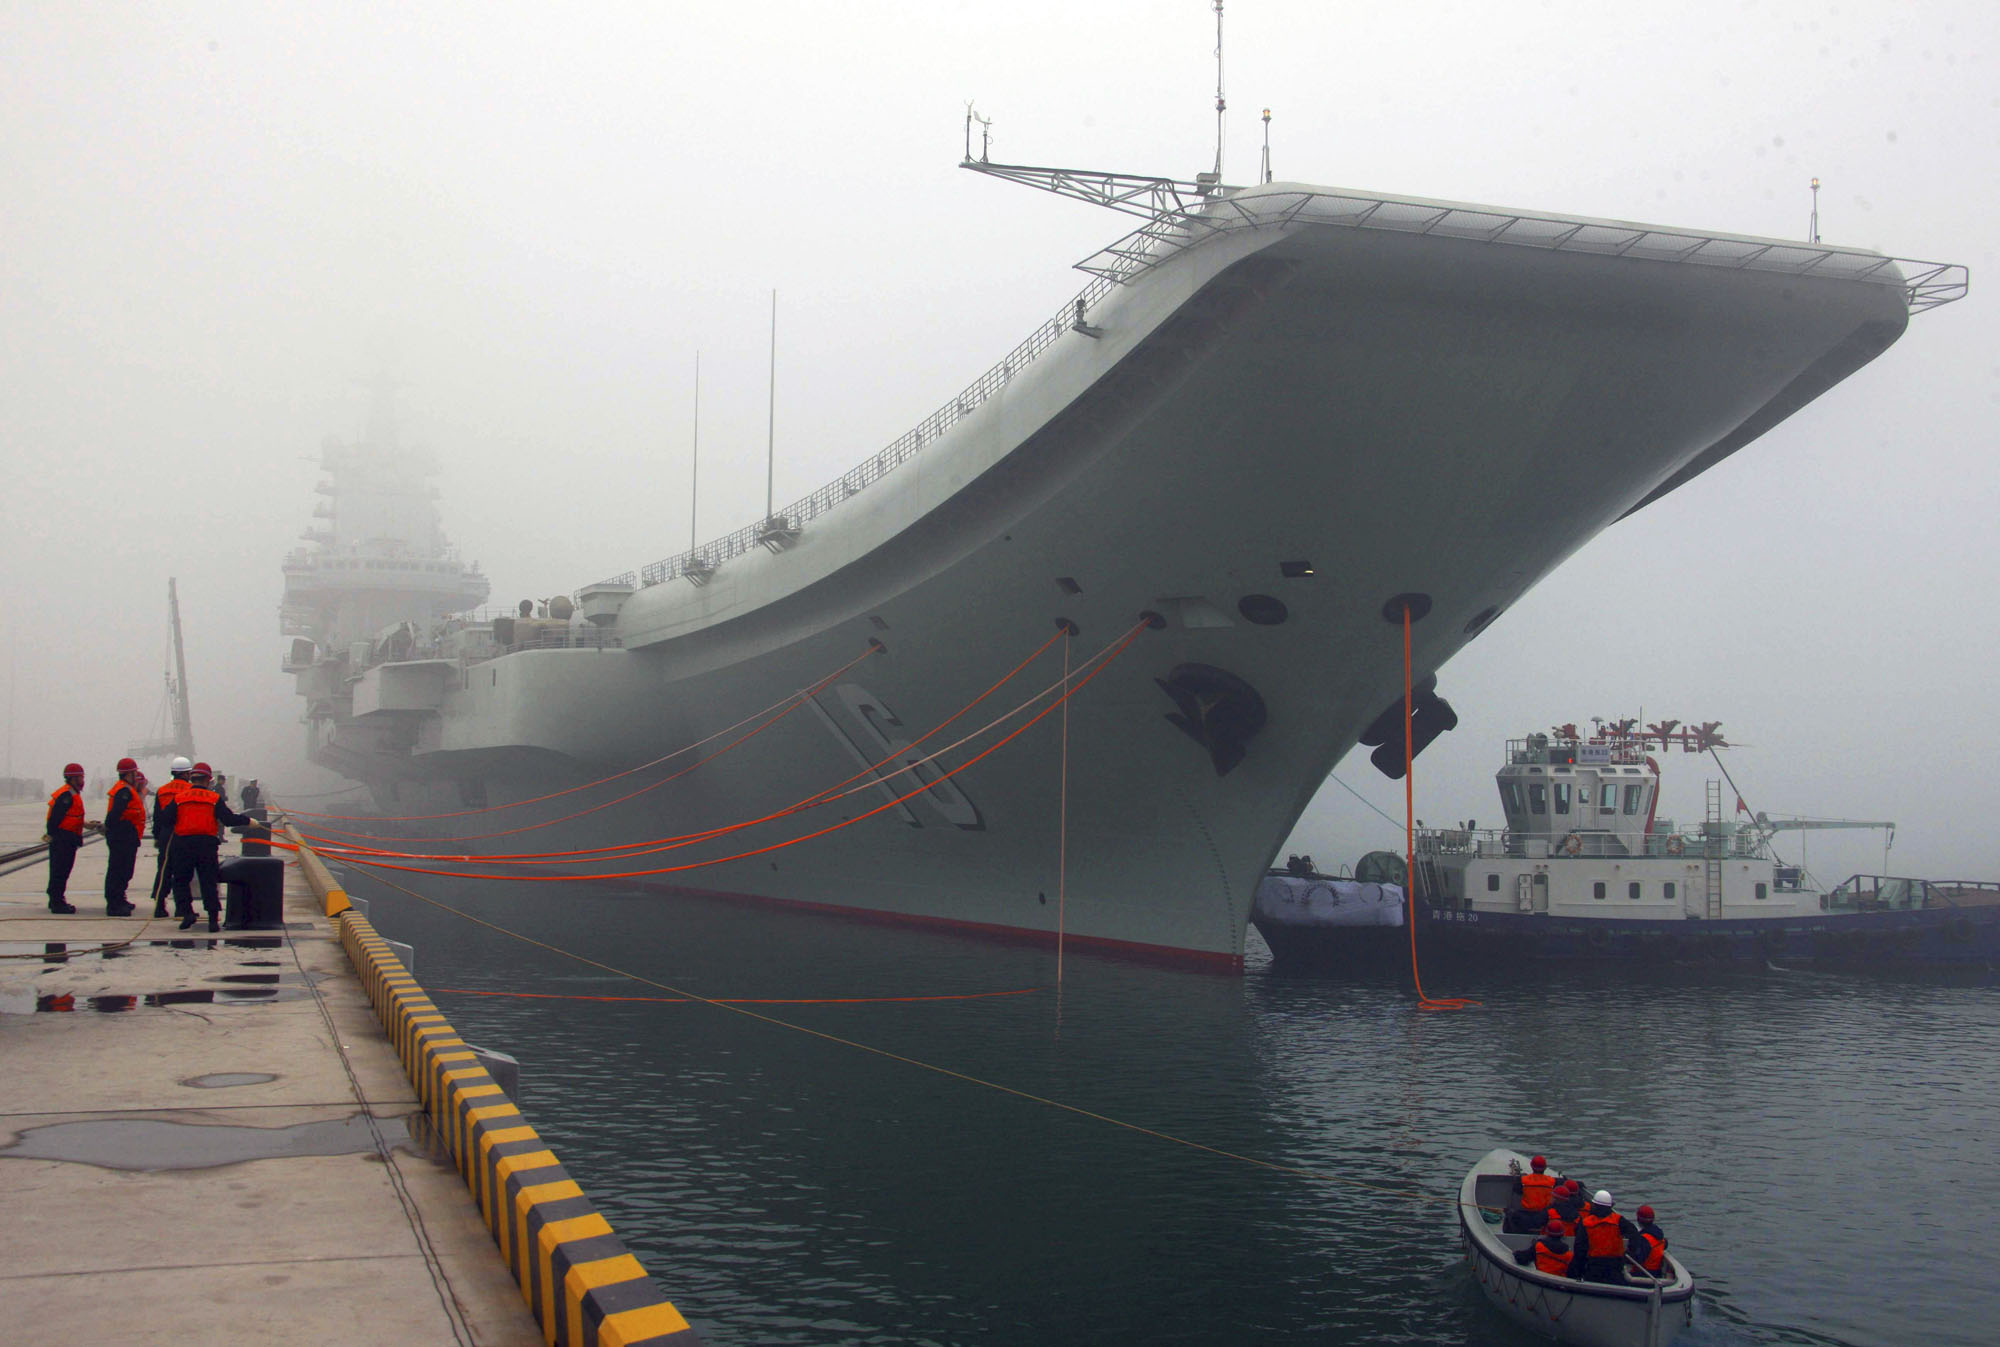 China's first aircraft carrier, the Liaoning, is anchored in the northern port in Qingdao in February 2013. | XINHUA / VIA AP